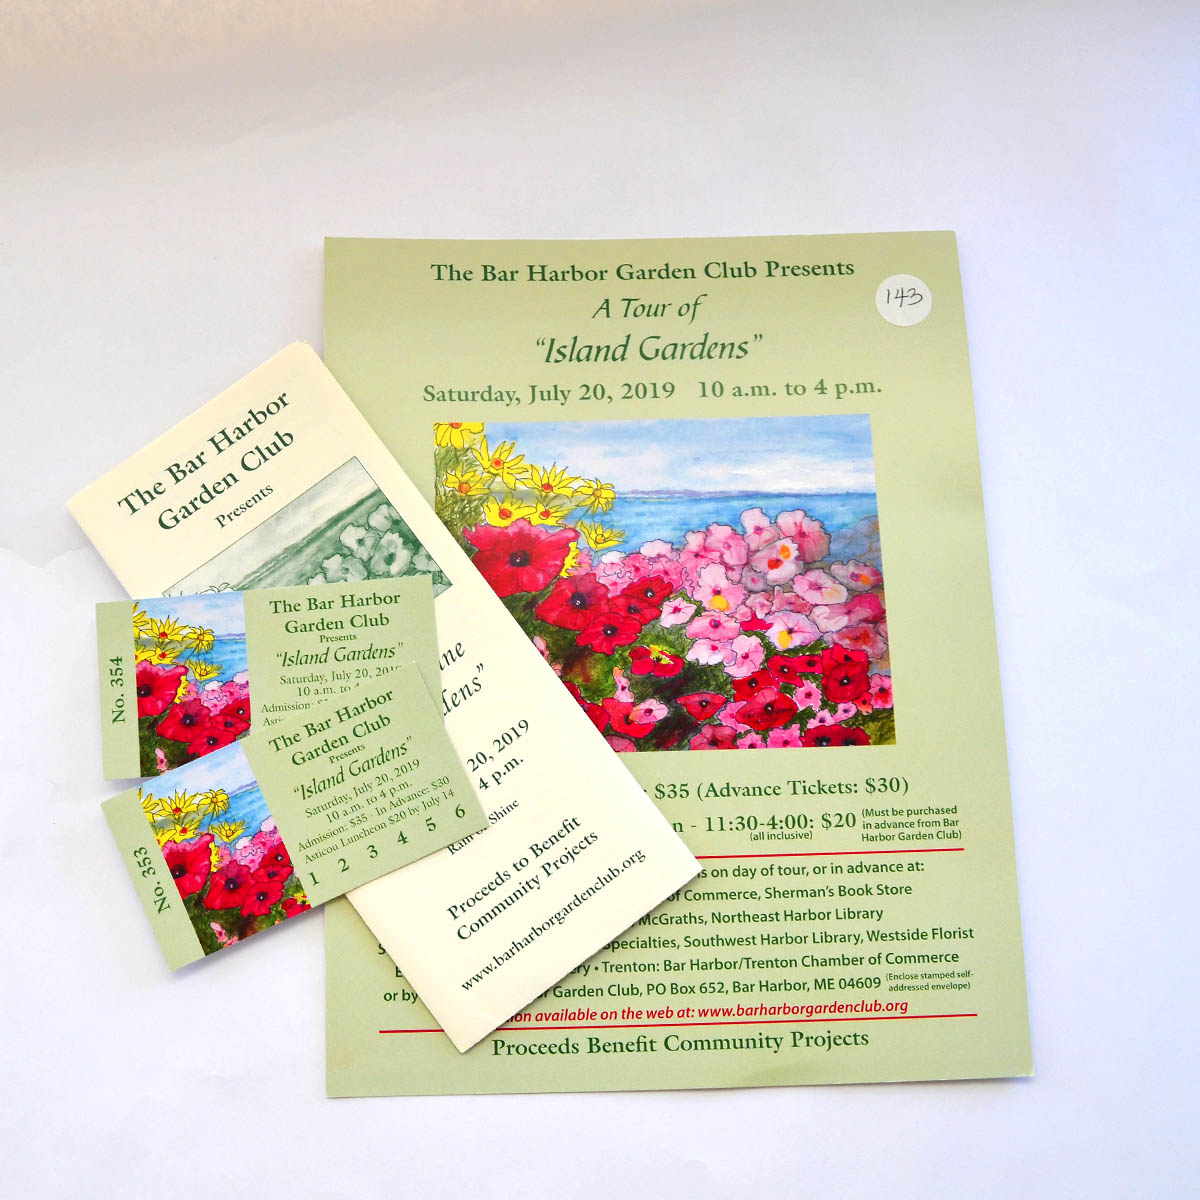 Garden Tour & Lunch - Our friends from the Bar Harbor Garden Club have generously provided two passes to their July 29 Garden Tour along with two tickets to stop for a buffet lunch at the Asticou Inn. What an enjoyable way to spend a day!